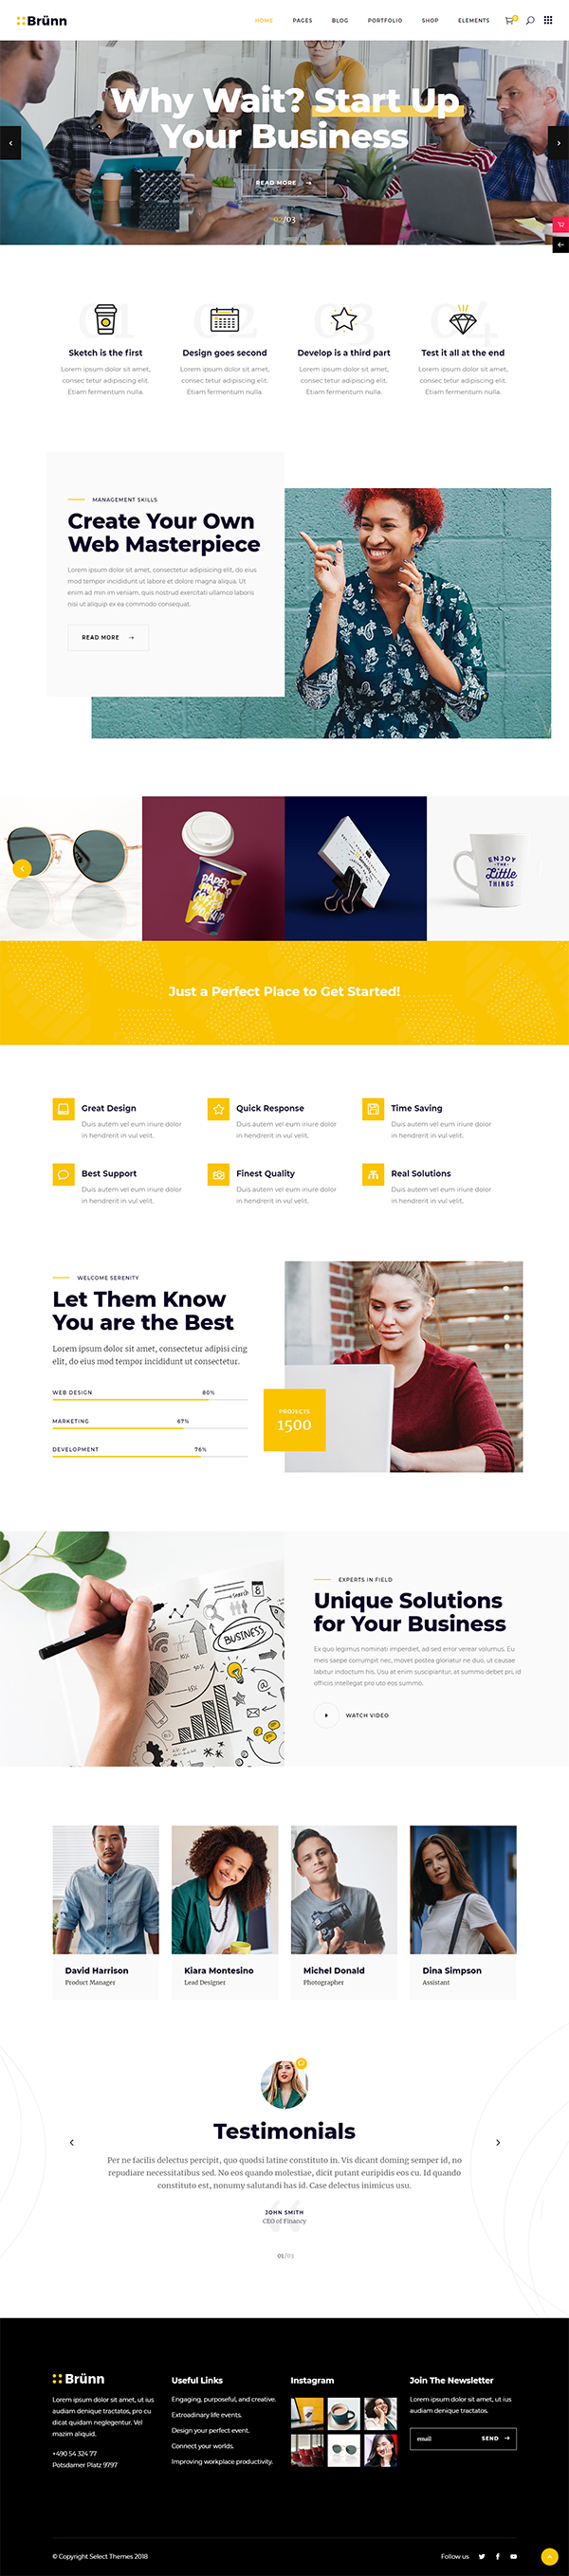 Brünn - Creative Agency Theme